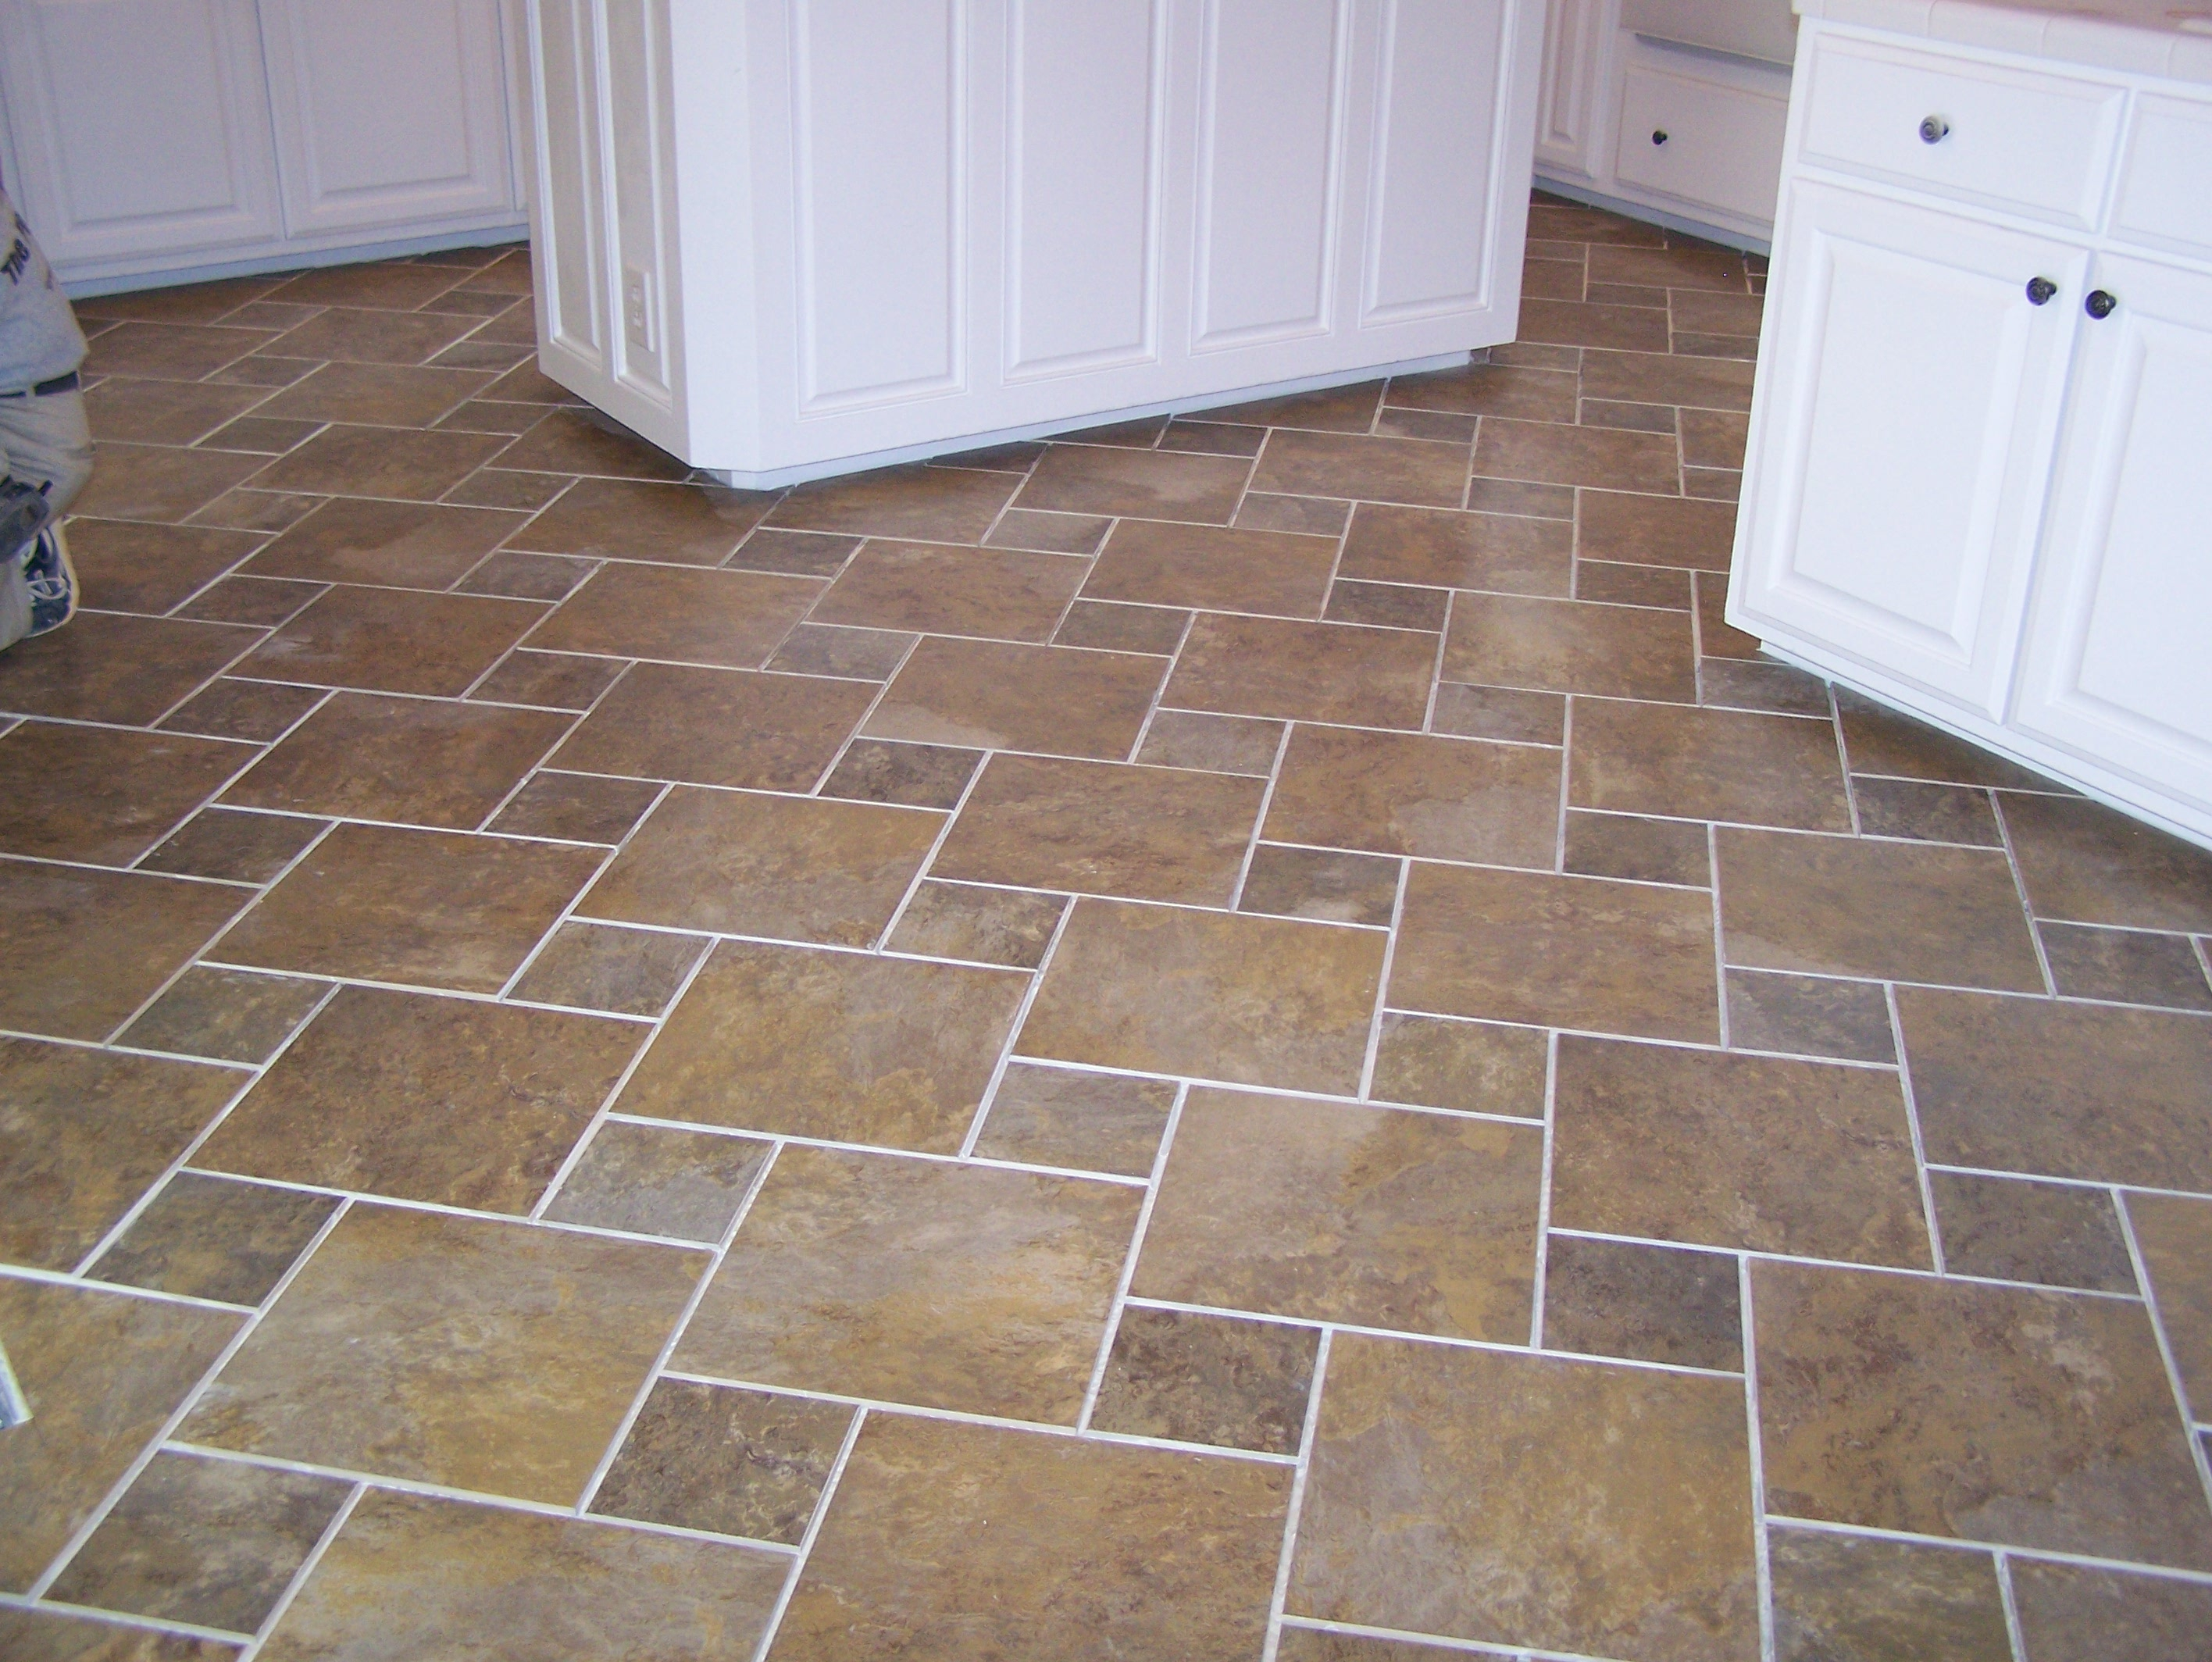 Bathroom Superstore Ceramic Tile Floor Designs Show1s Com